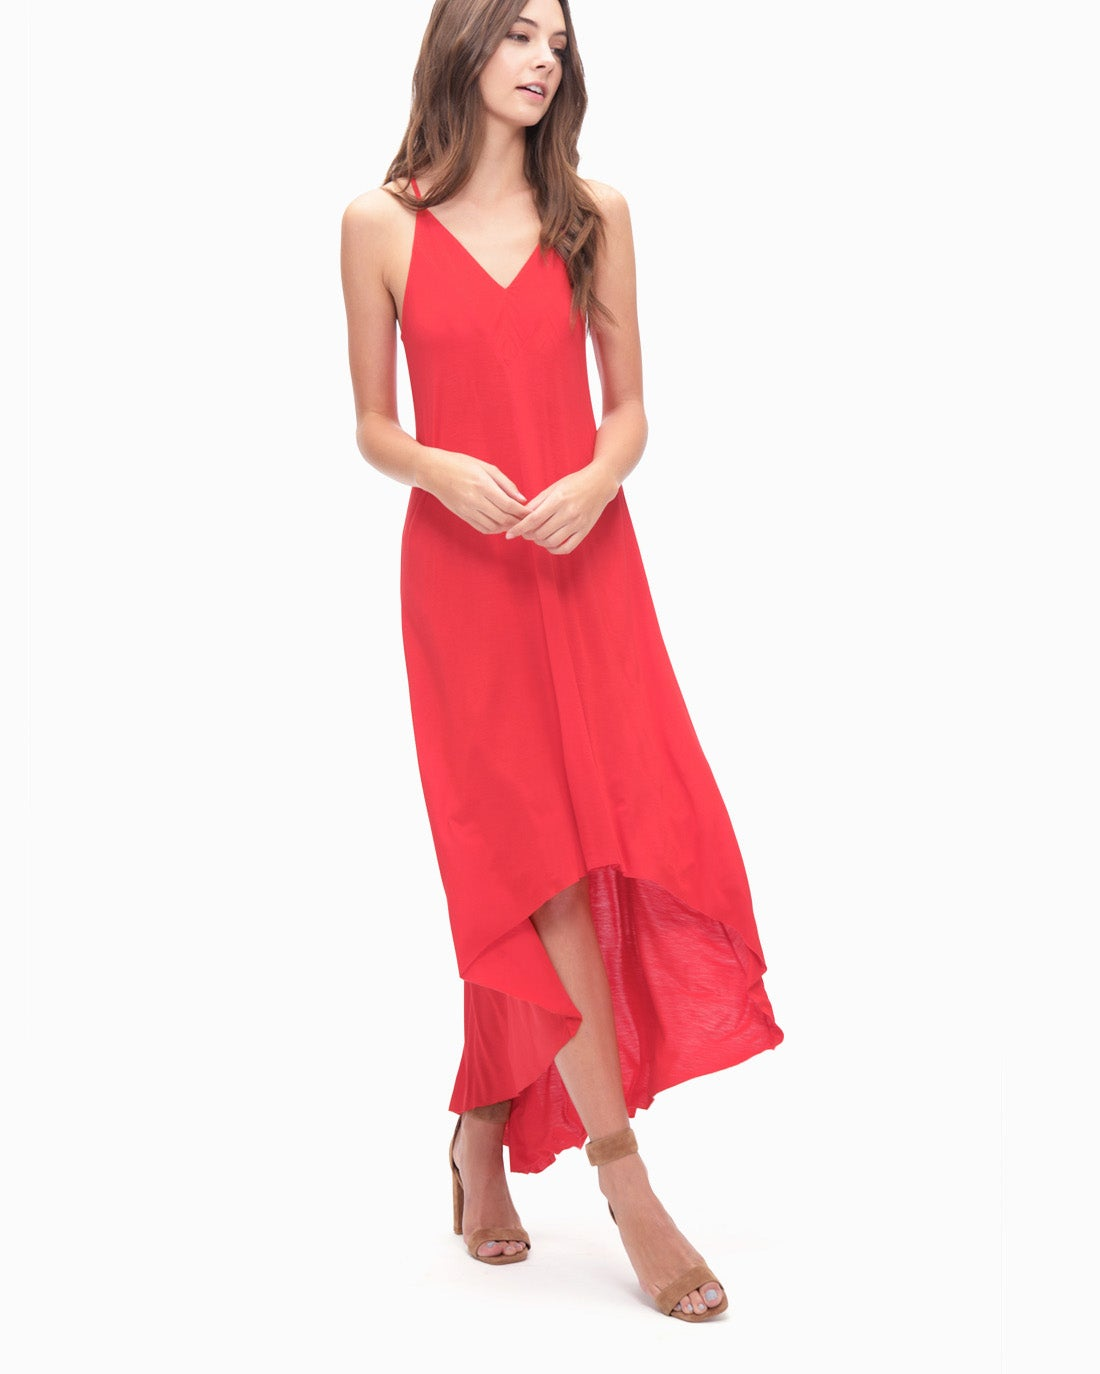 Splendid Women's Rayon Jersey V-Neck Dress